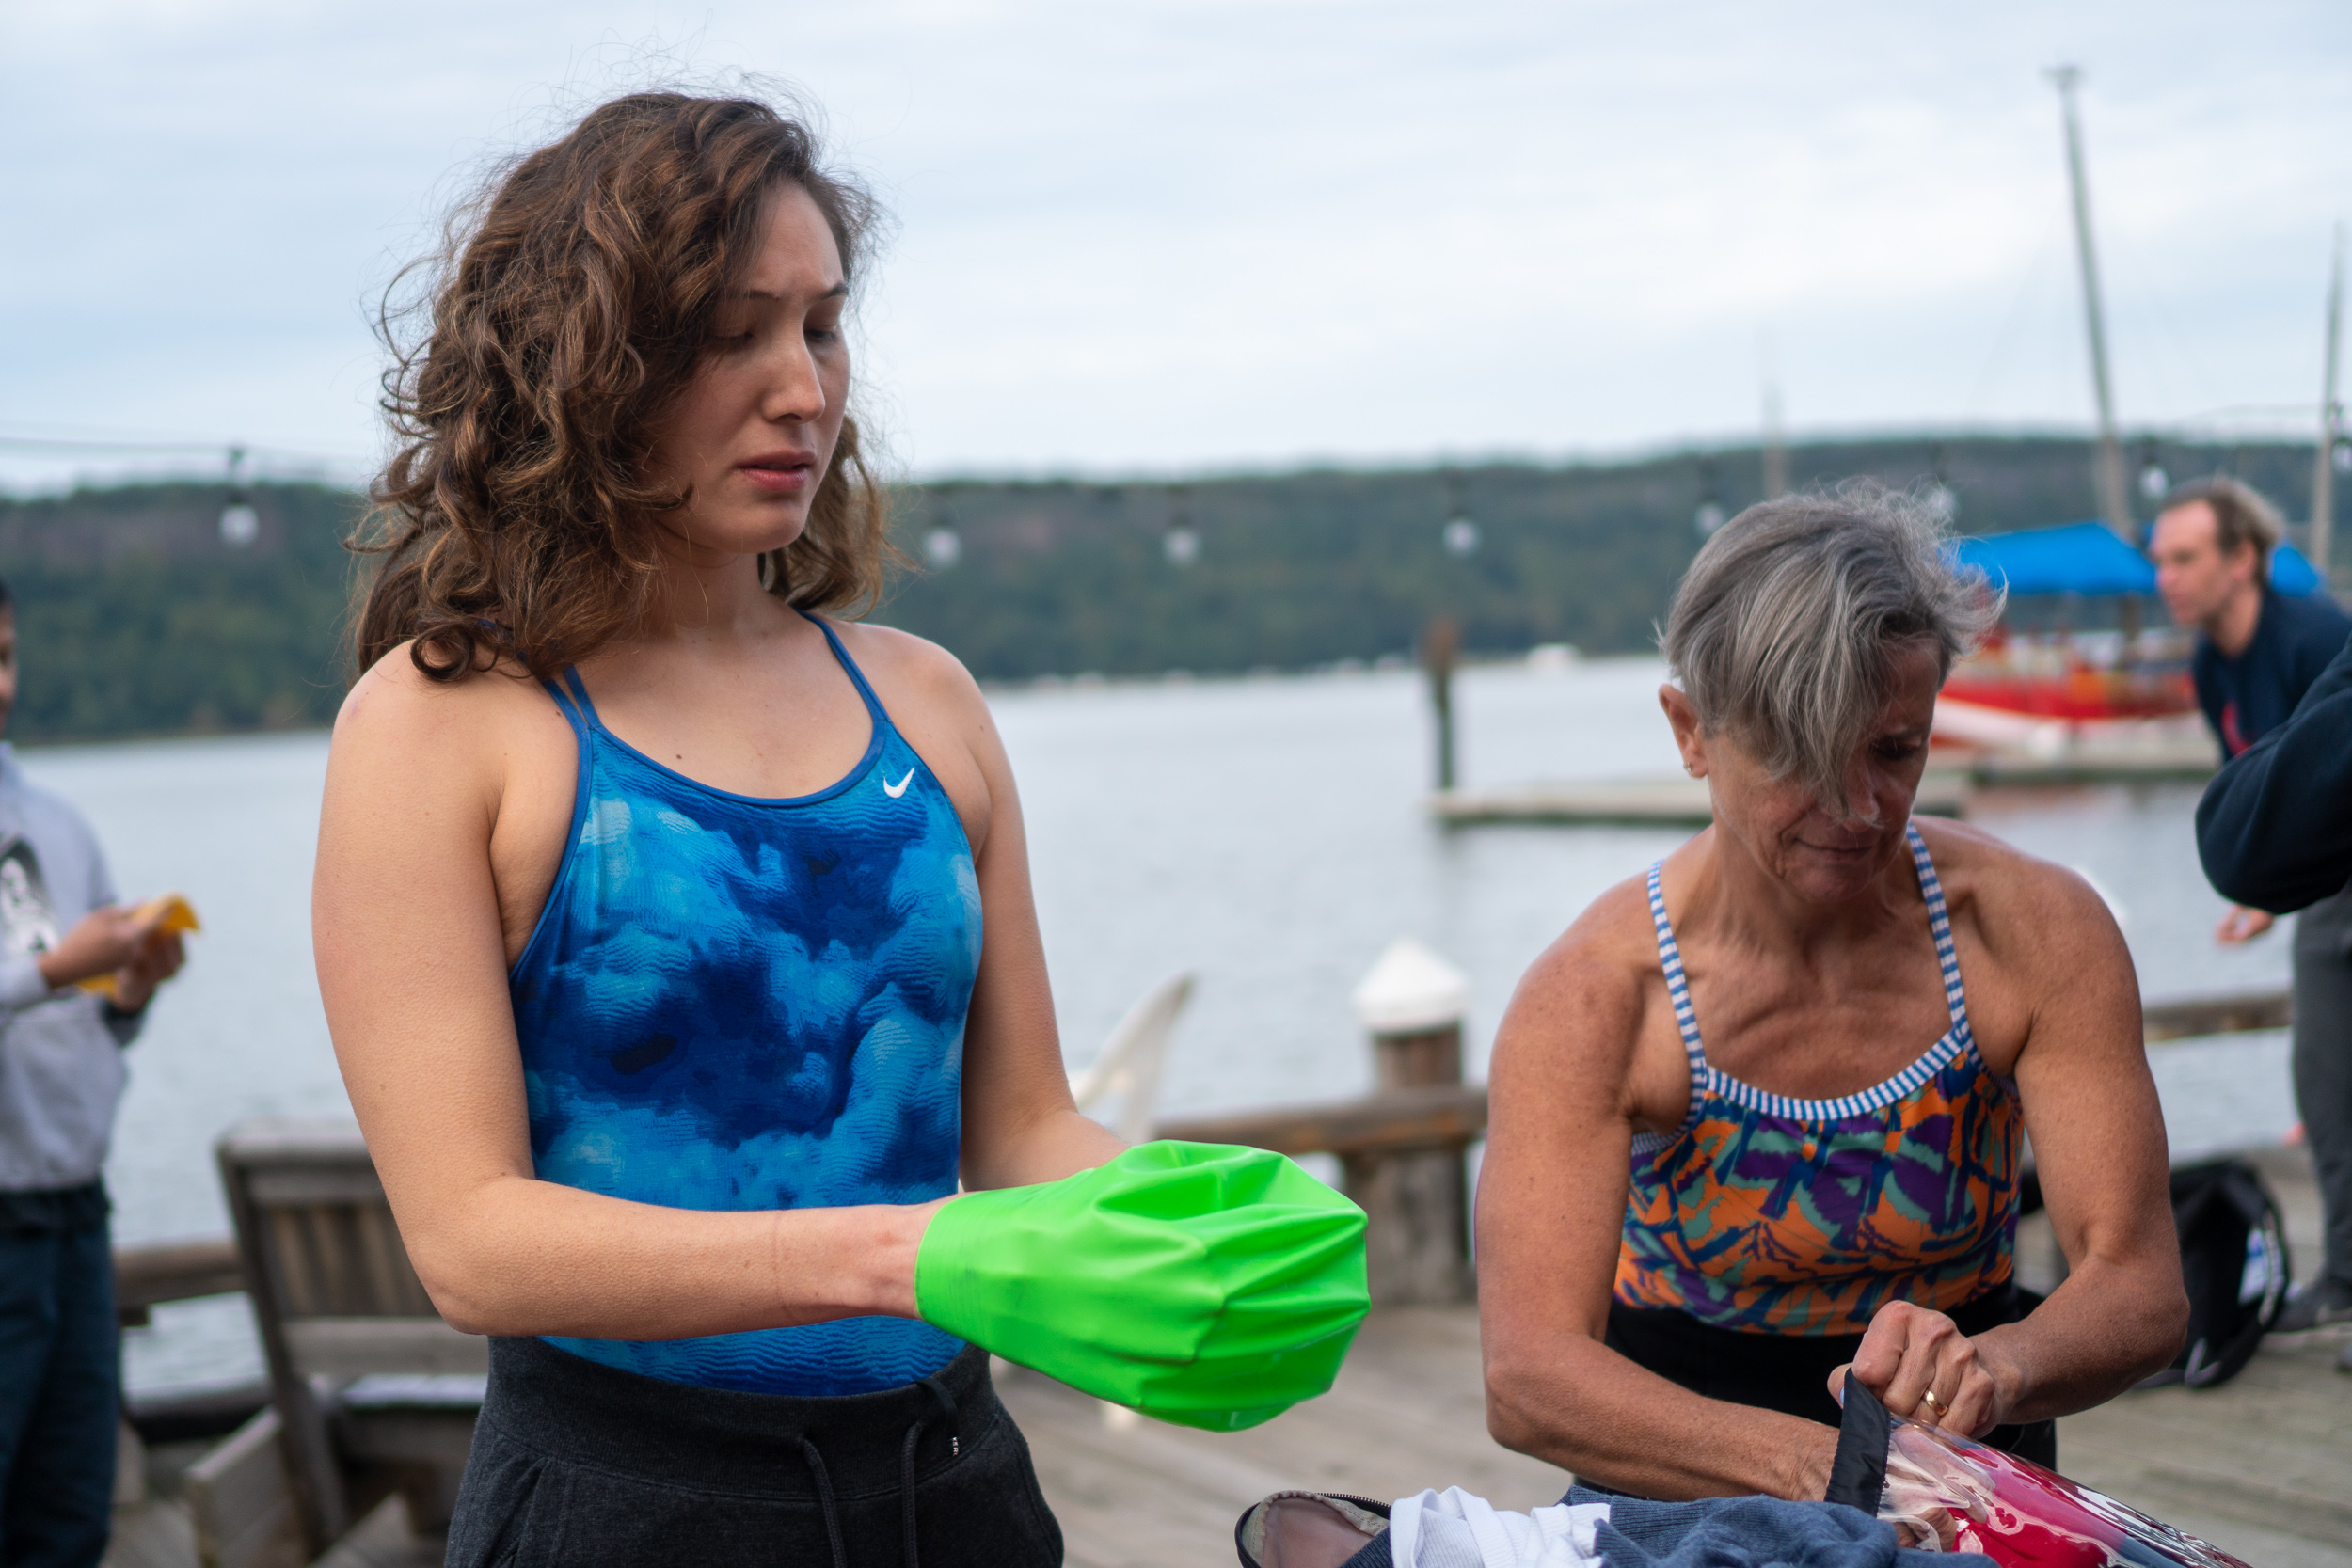 Jennifer Snyder puts on her swim cap before the Hudson swim. She is an experienced open water swimmer and swam around Manhattan in 2017.